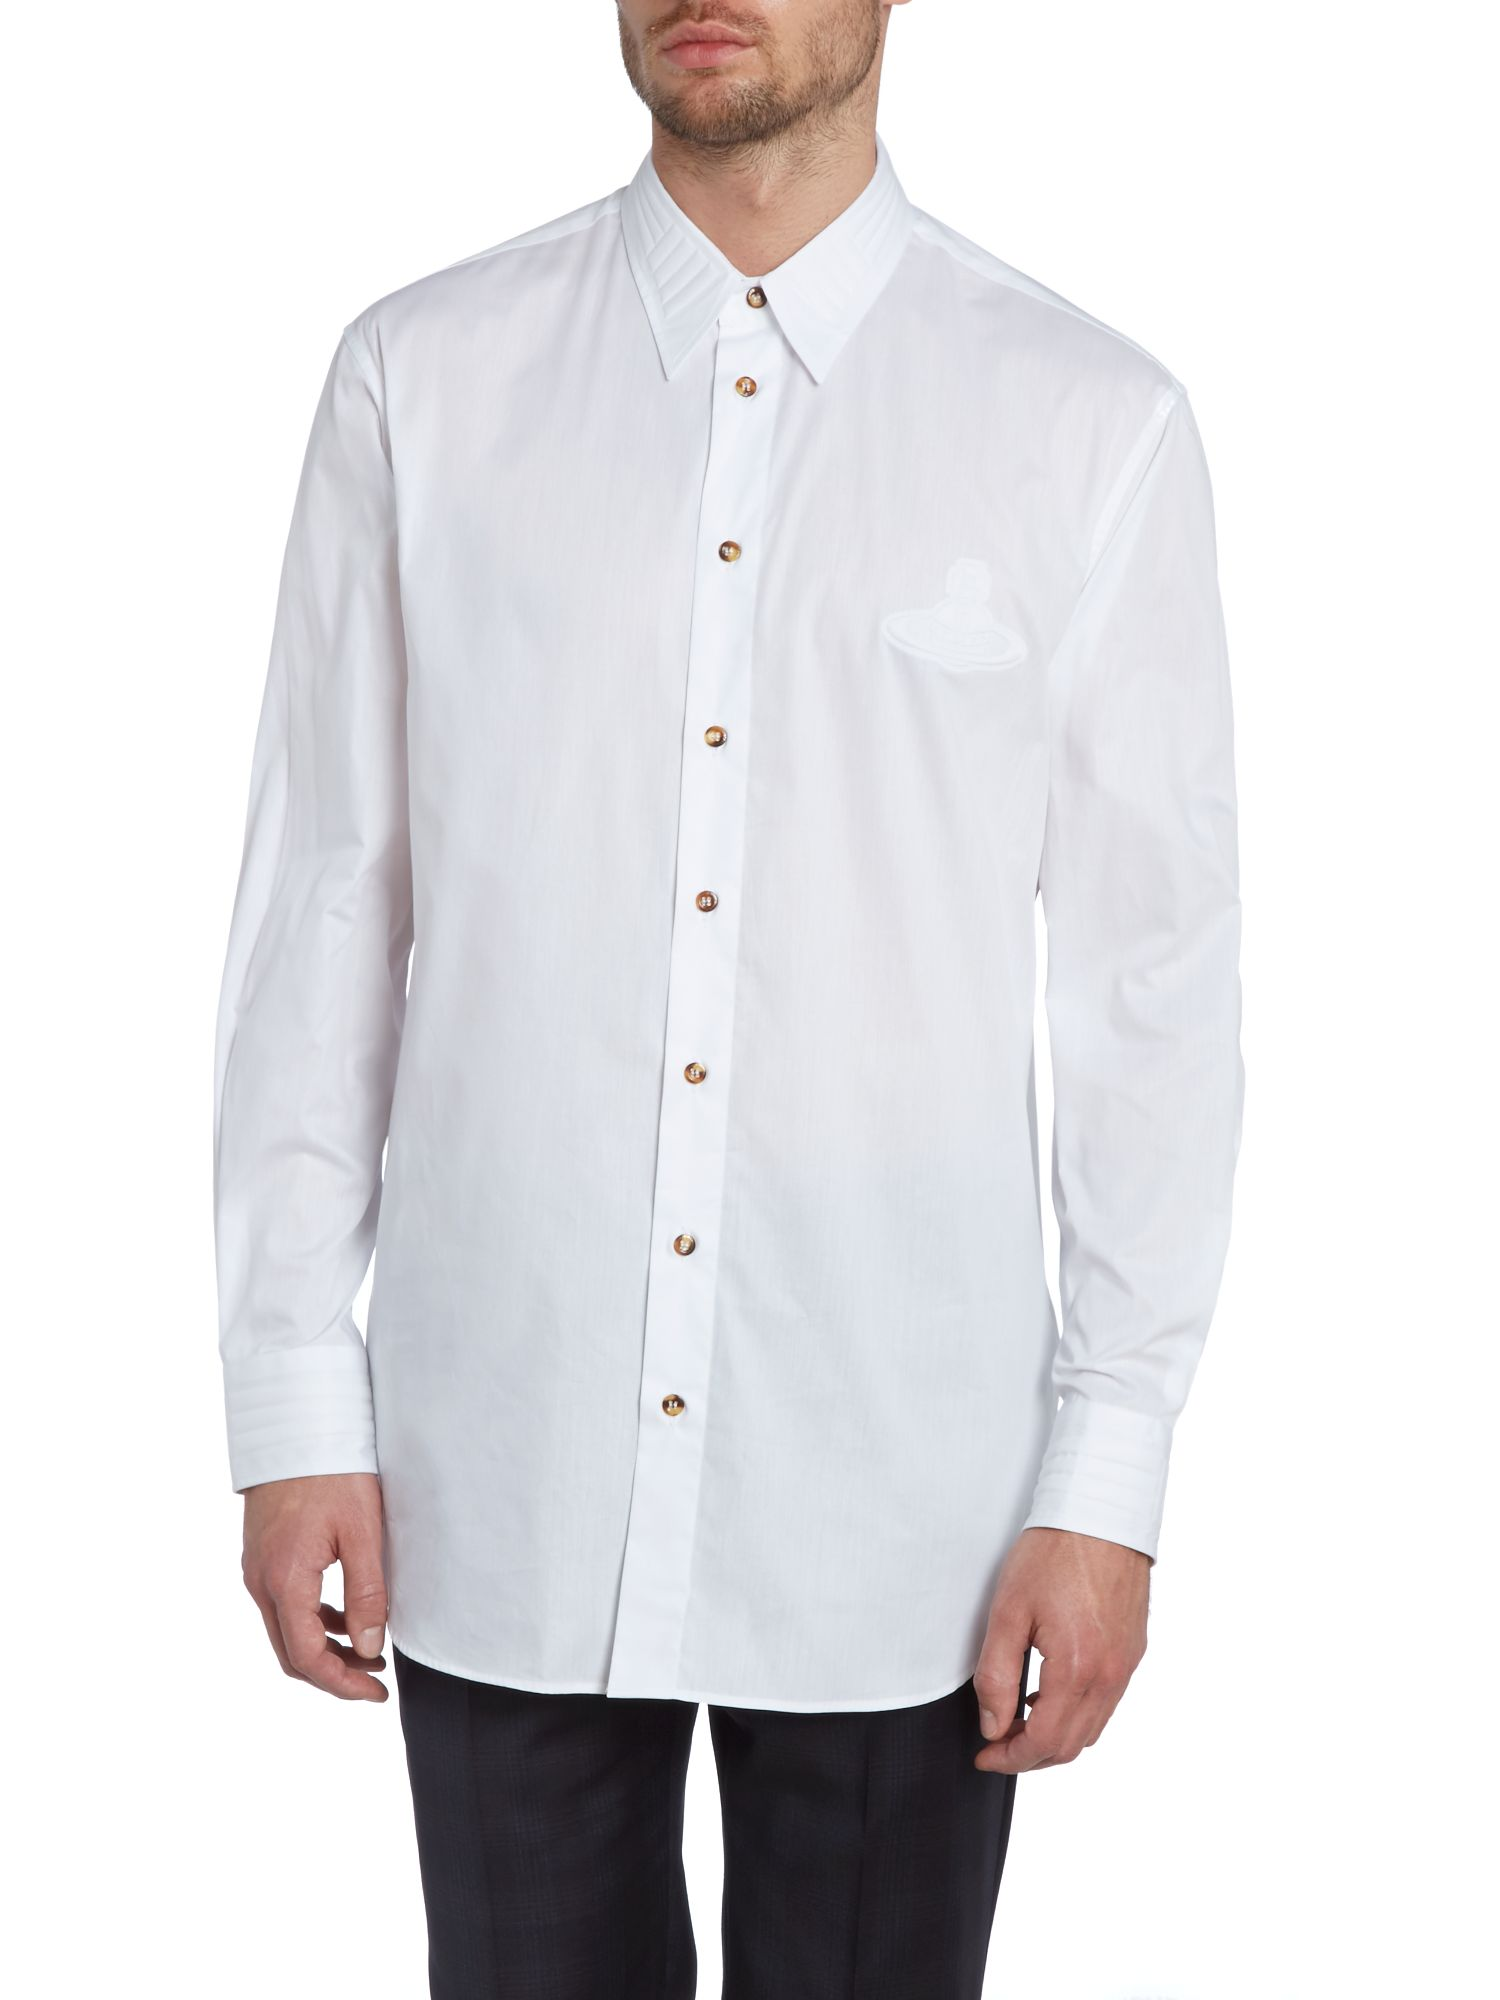 Collar detail orb logo shirt